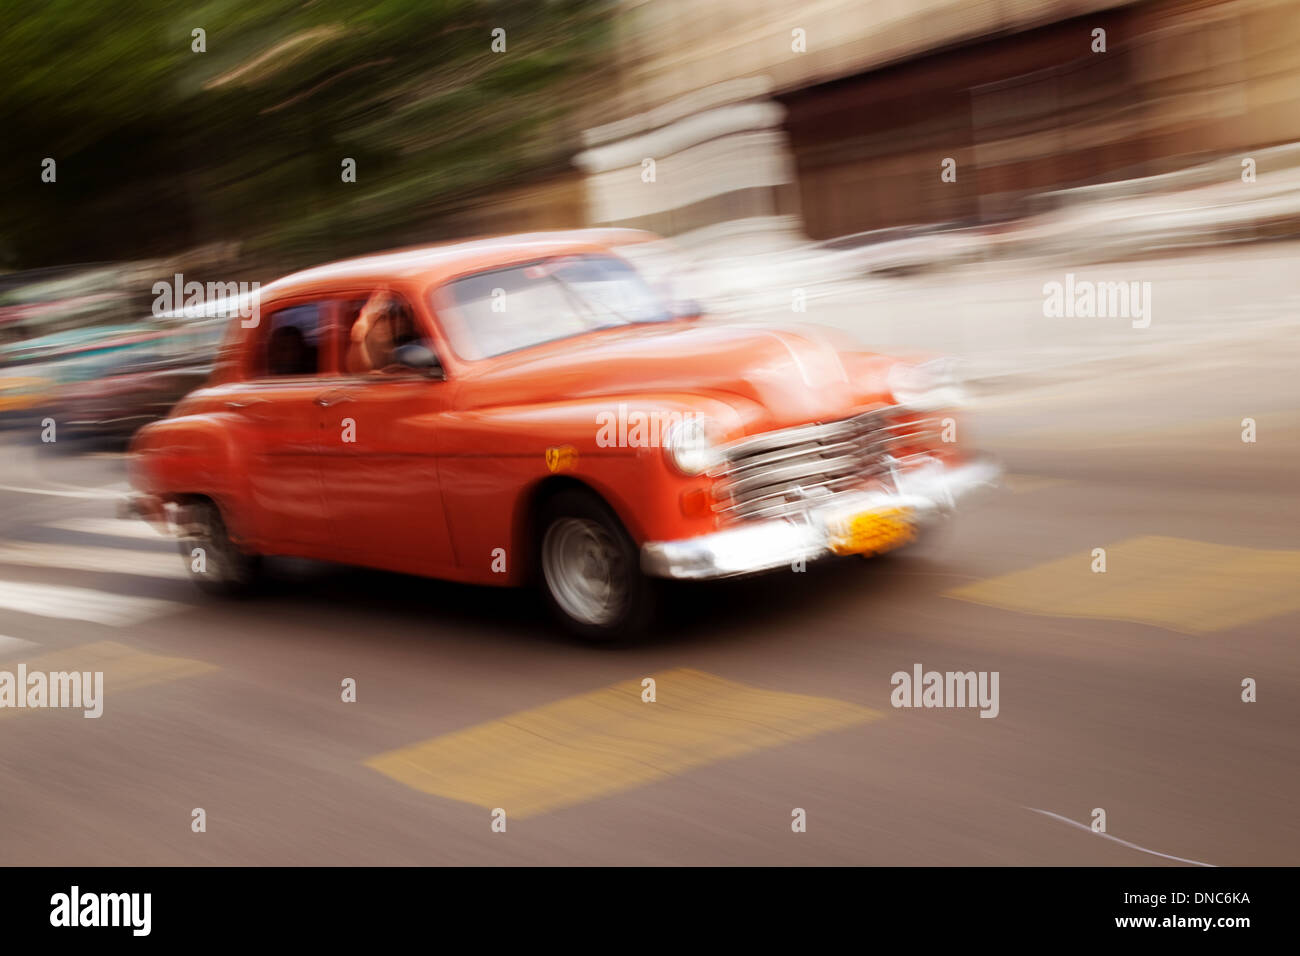 Classic American car on the street with motion blur, Havana, Cuba, Caribbean, Latin America - Stock Image